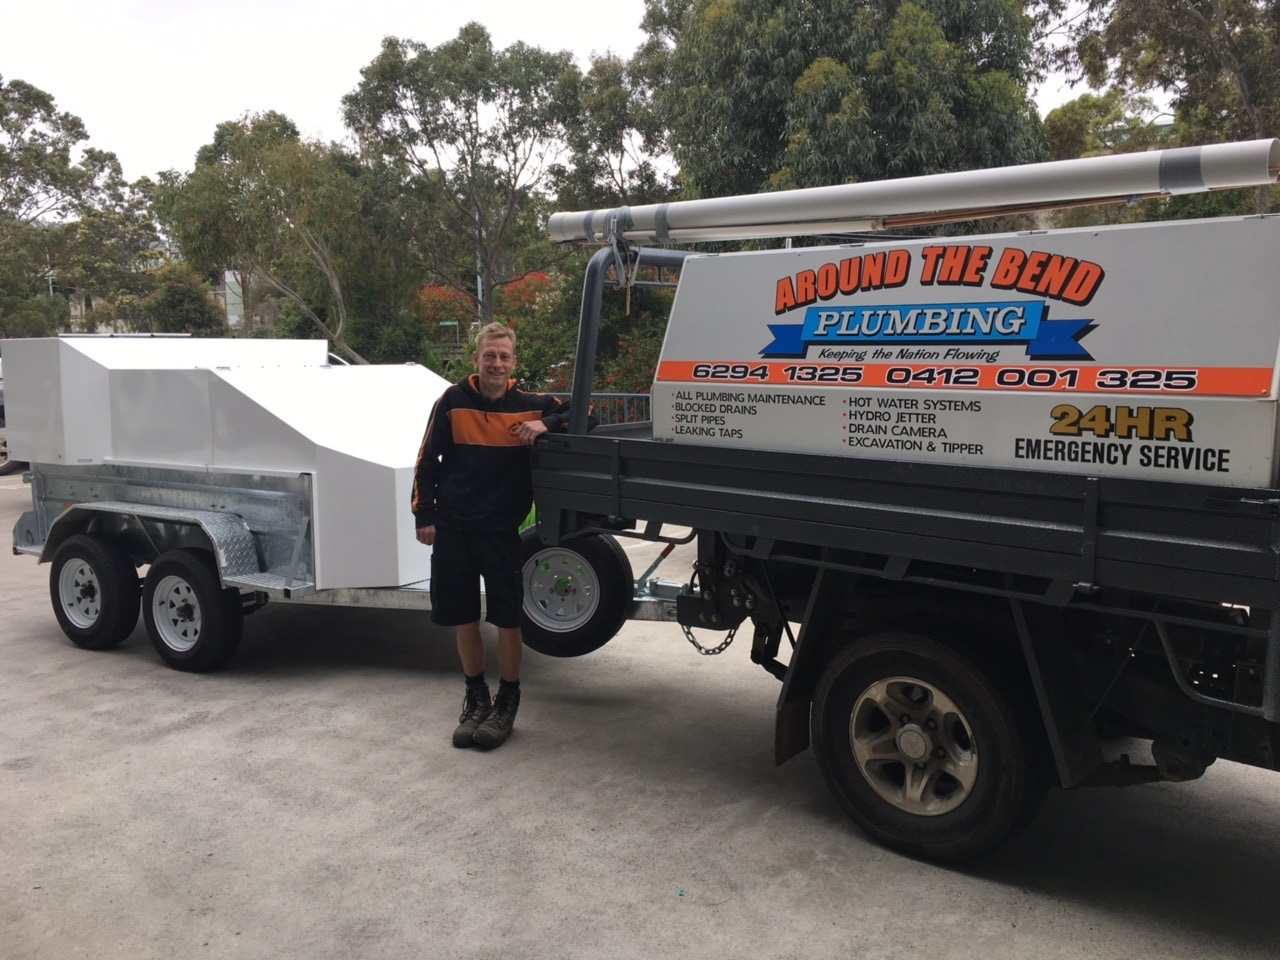 to welcome plumbing care decor services duncan